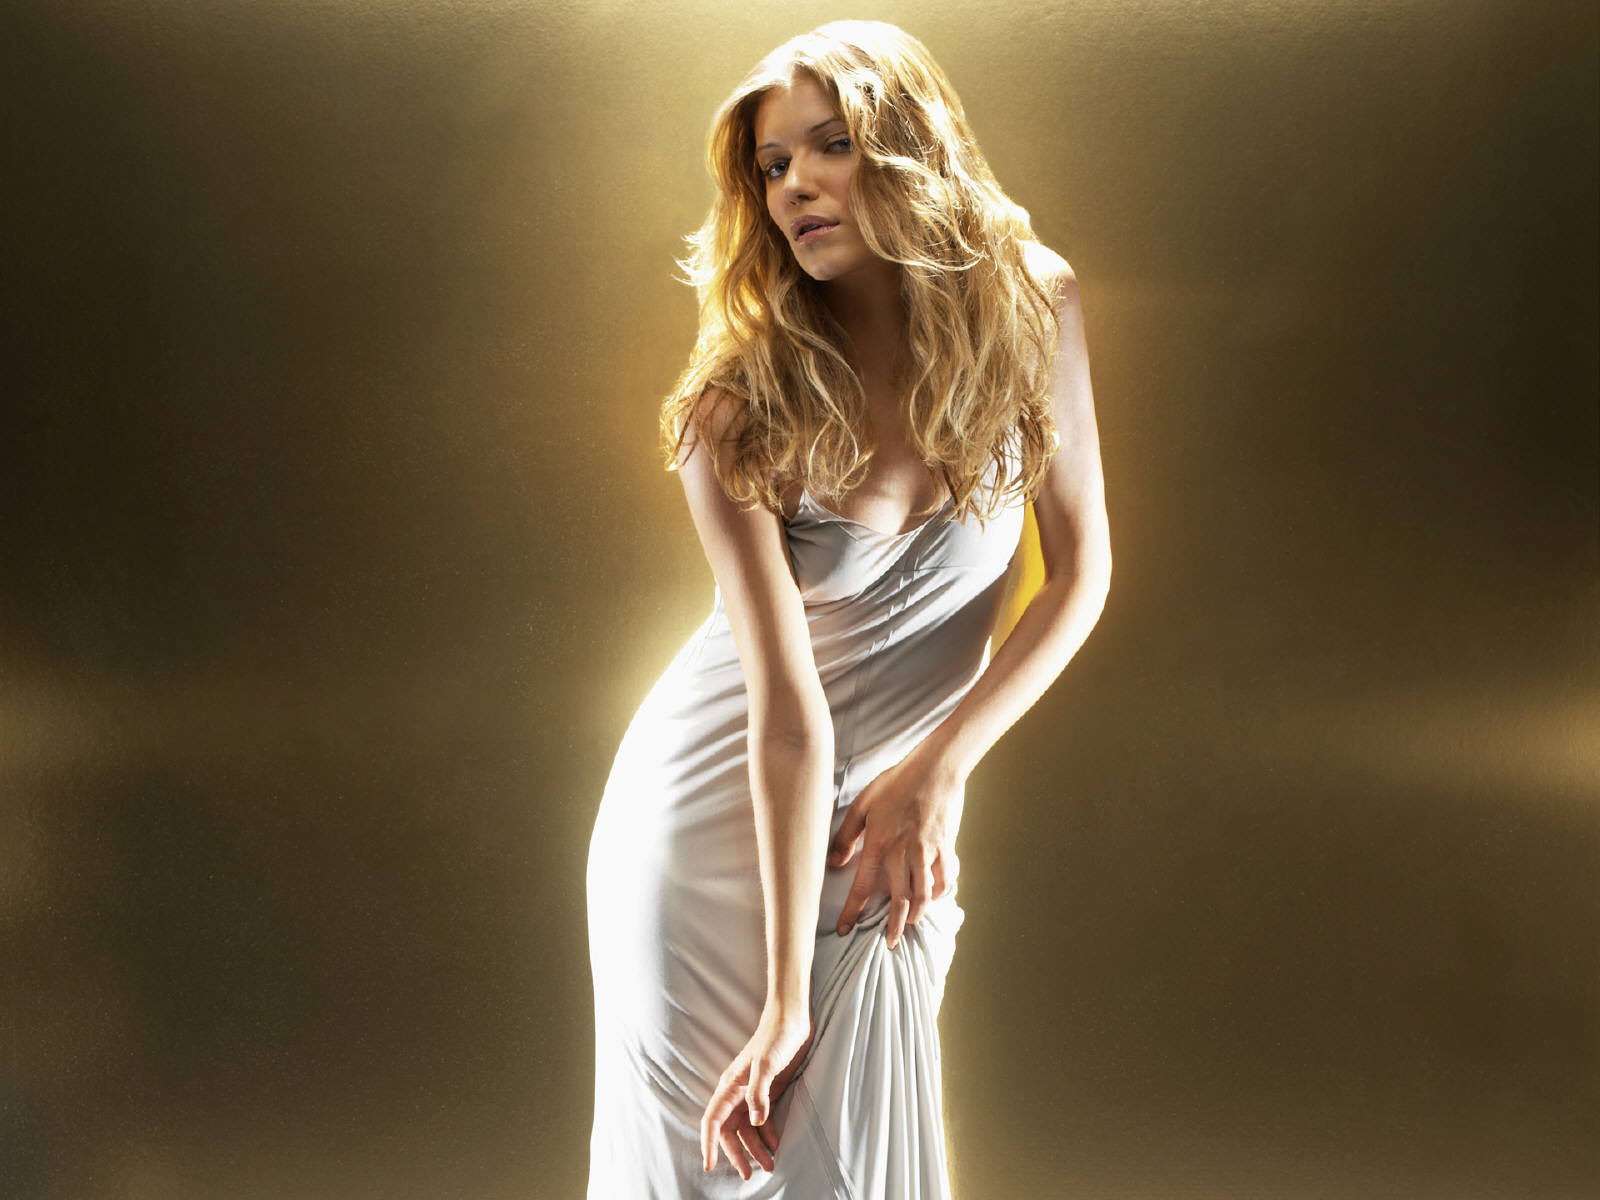 1600x1200 - Ivana Milicevic Wallpapers 8